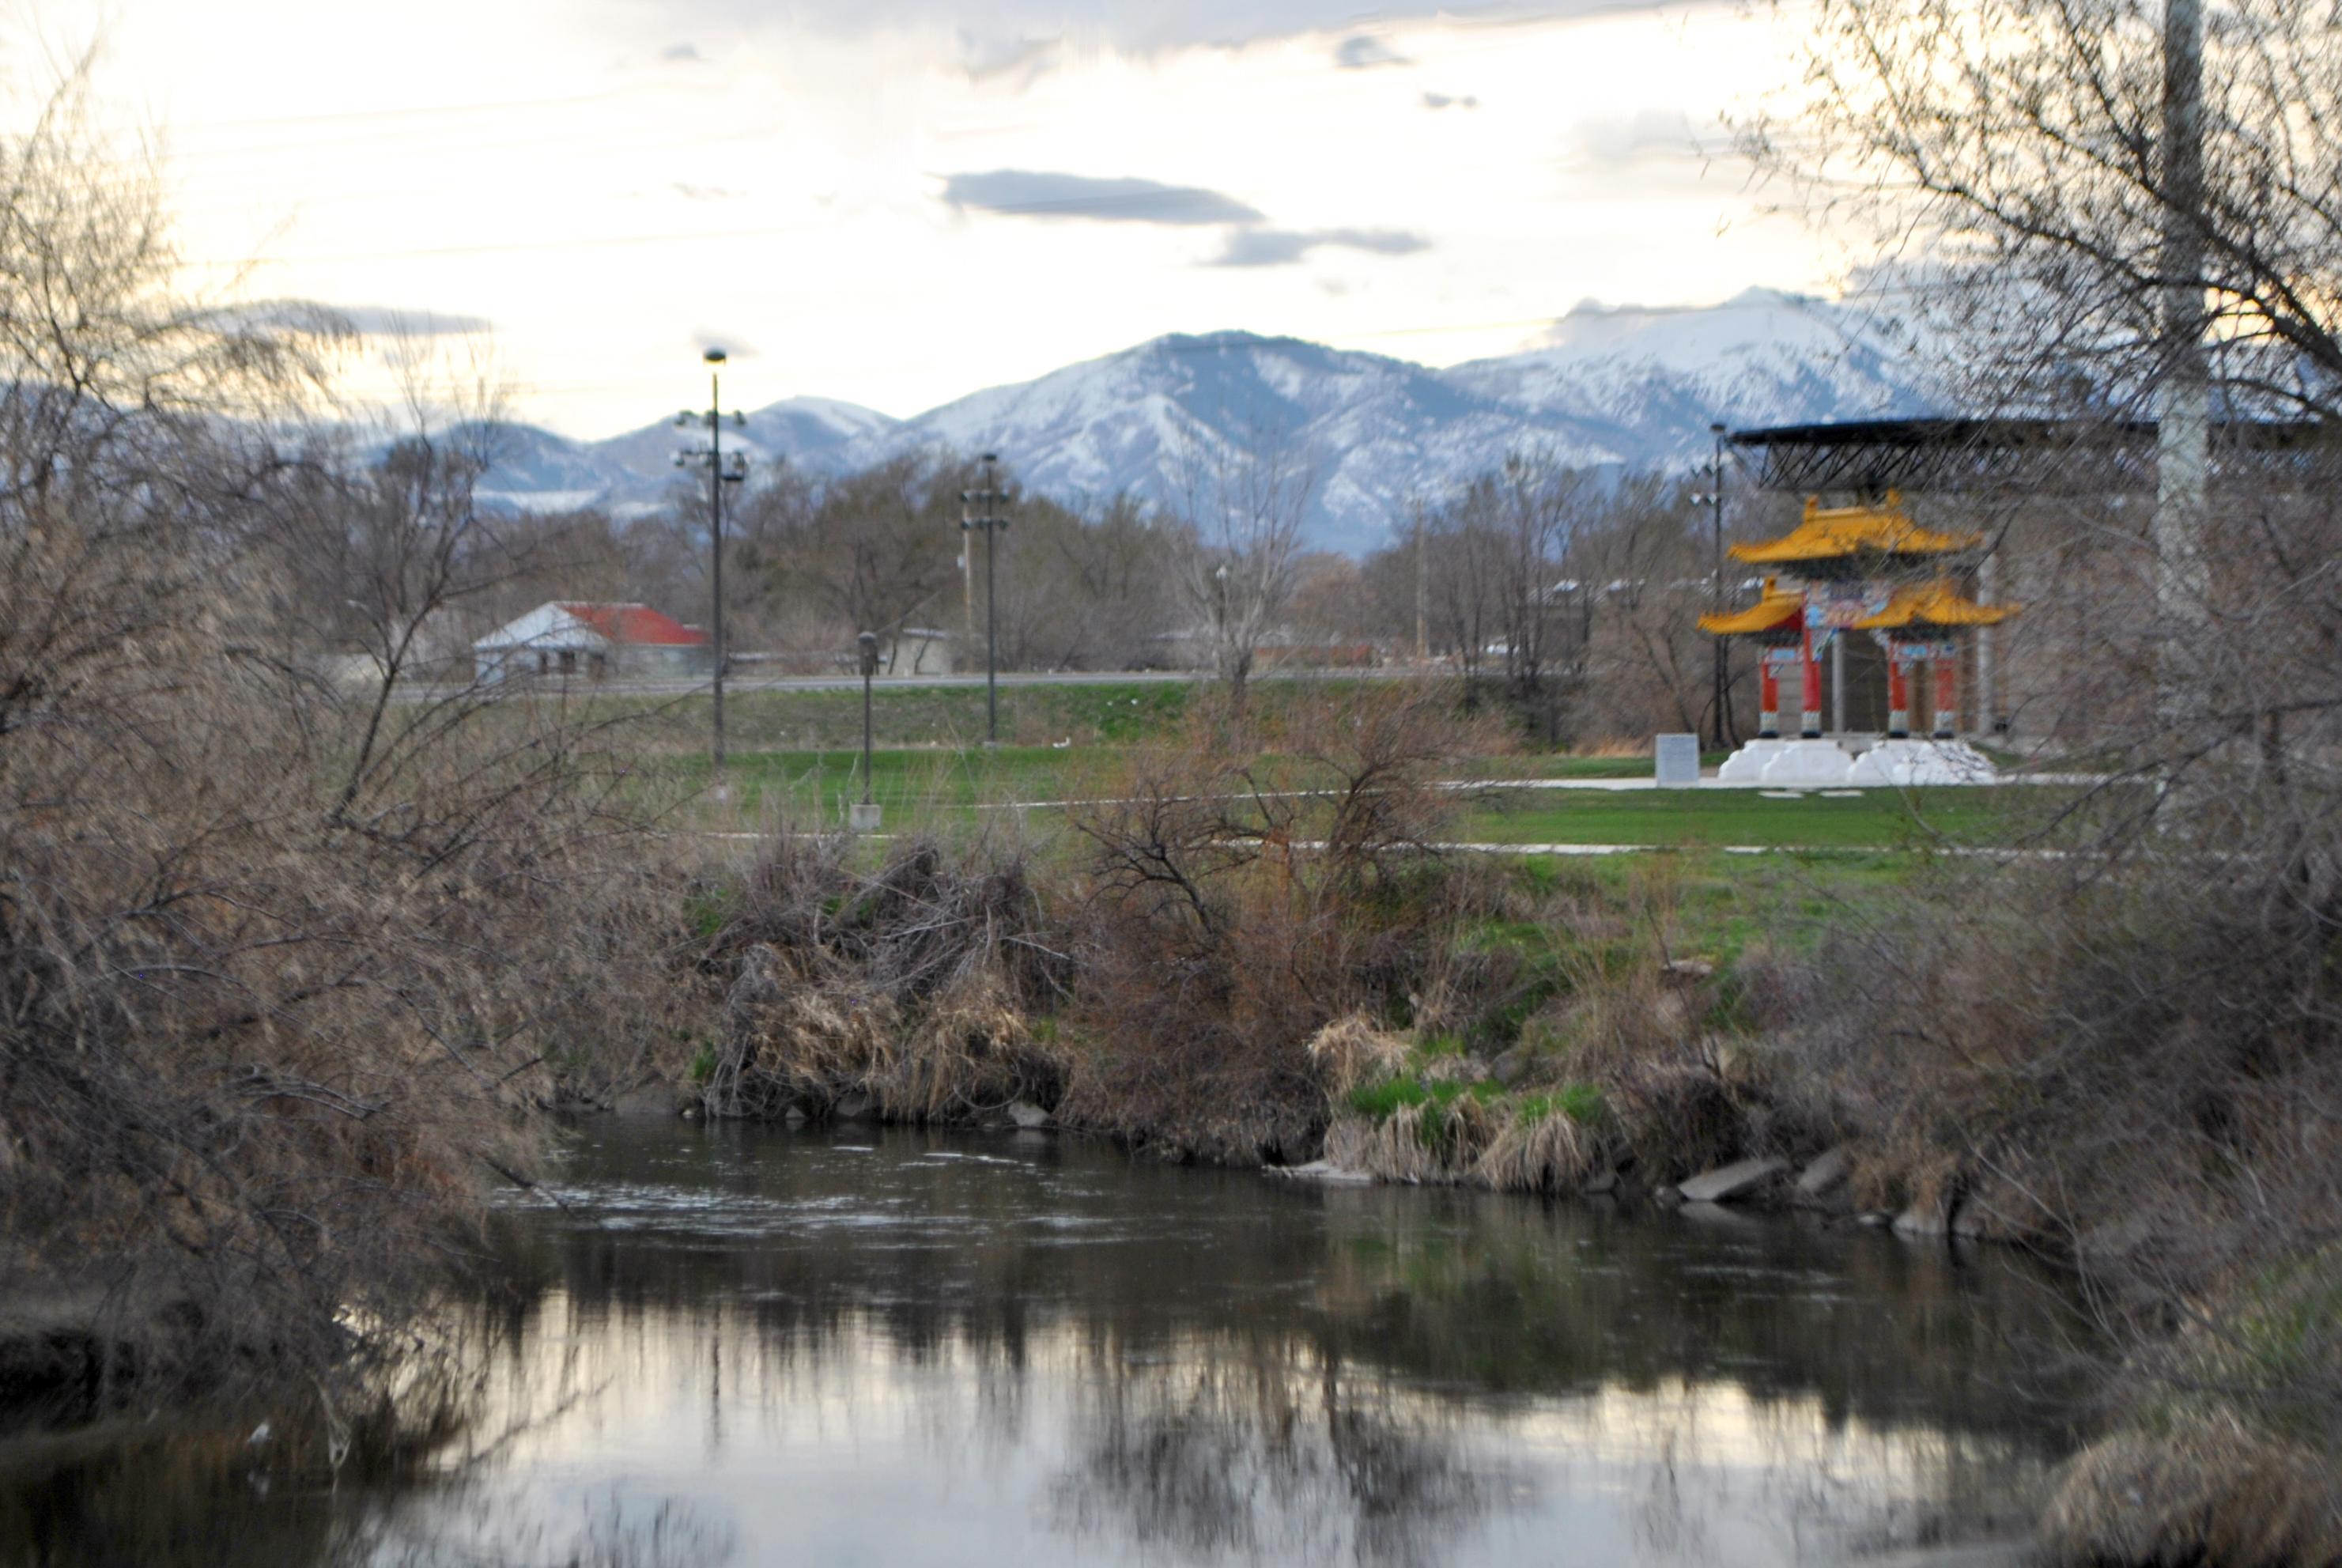 Jordan River in the foreground, Utah Cultural Celebration Center's grounds and mountains in the background